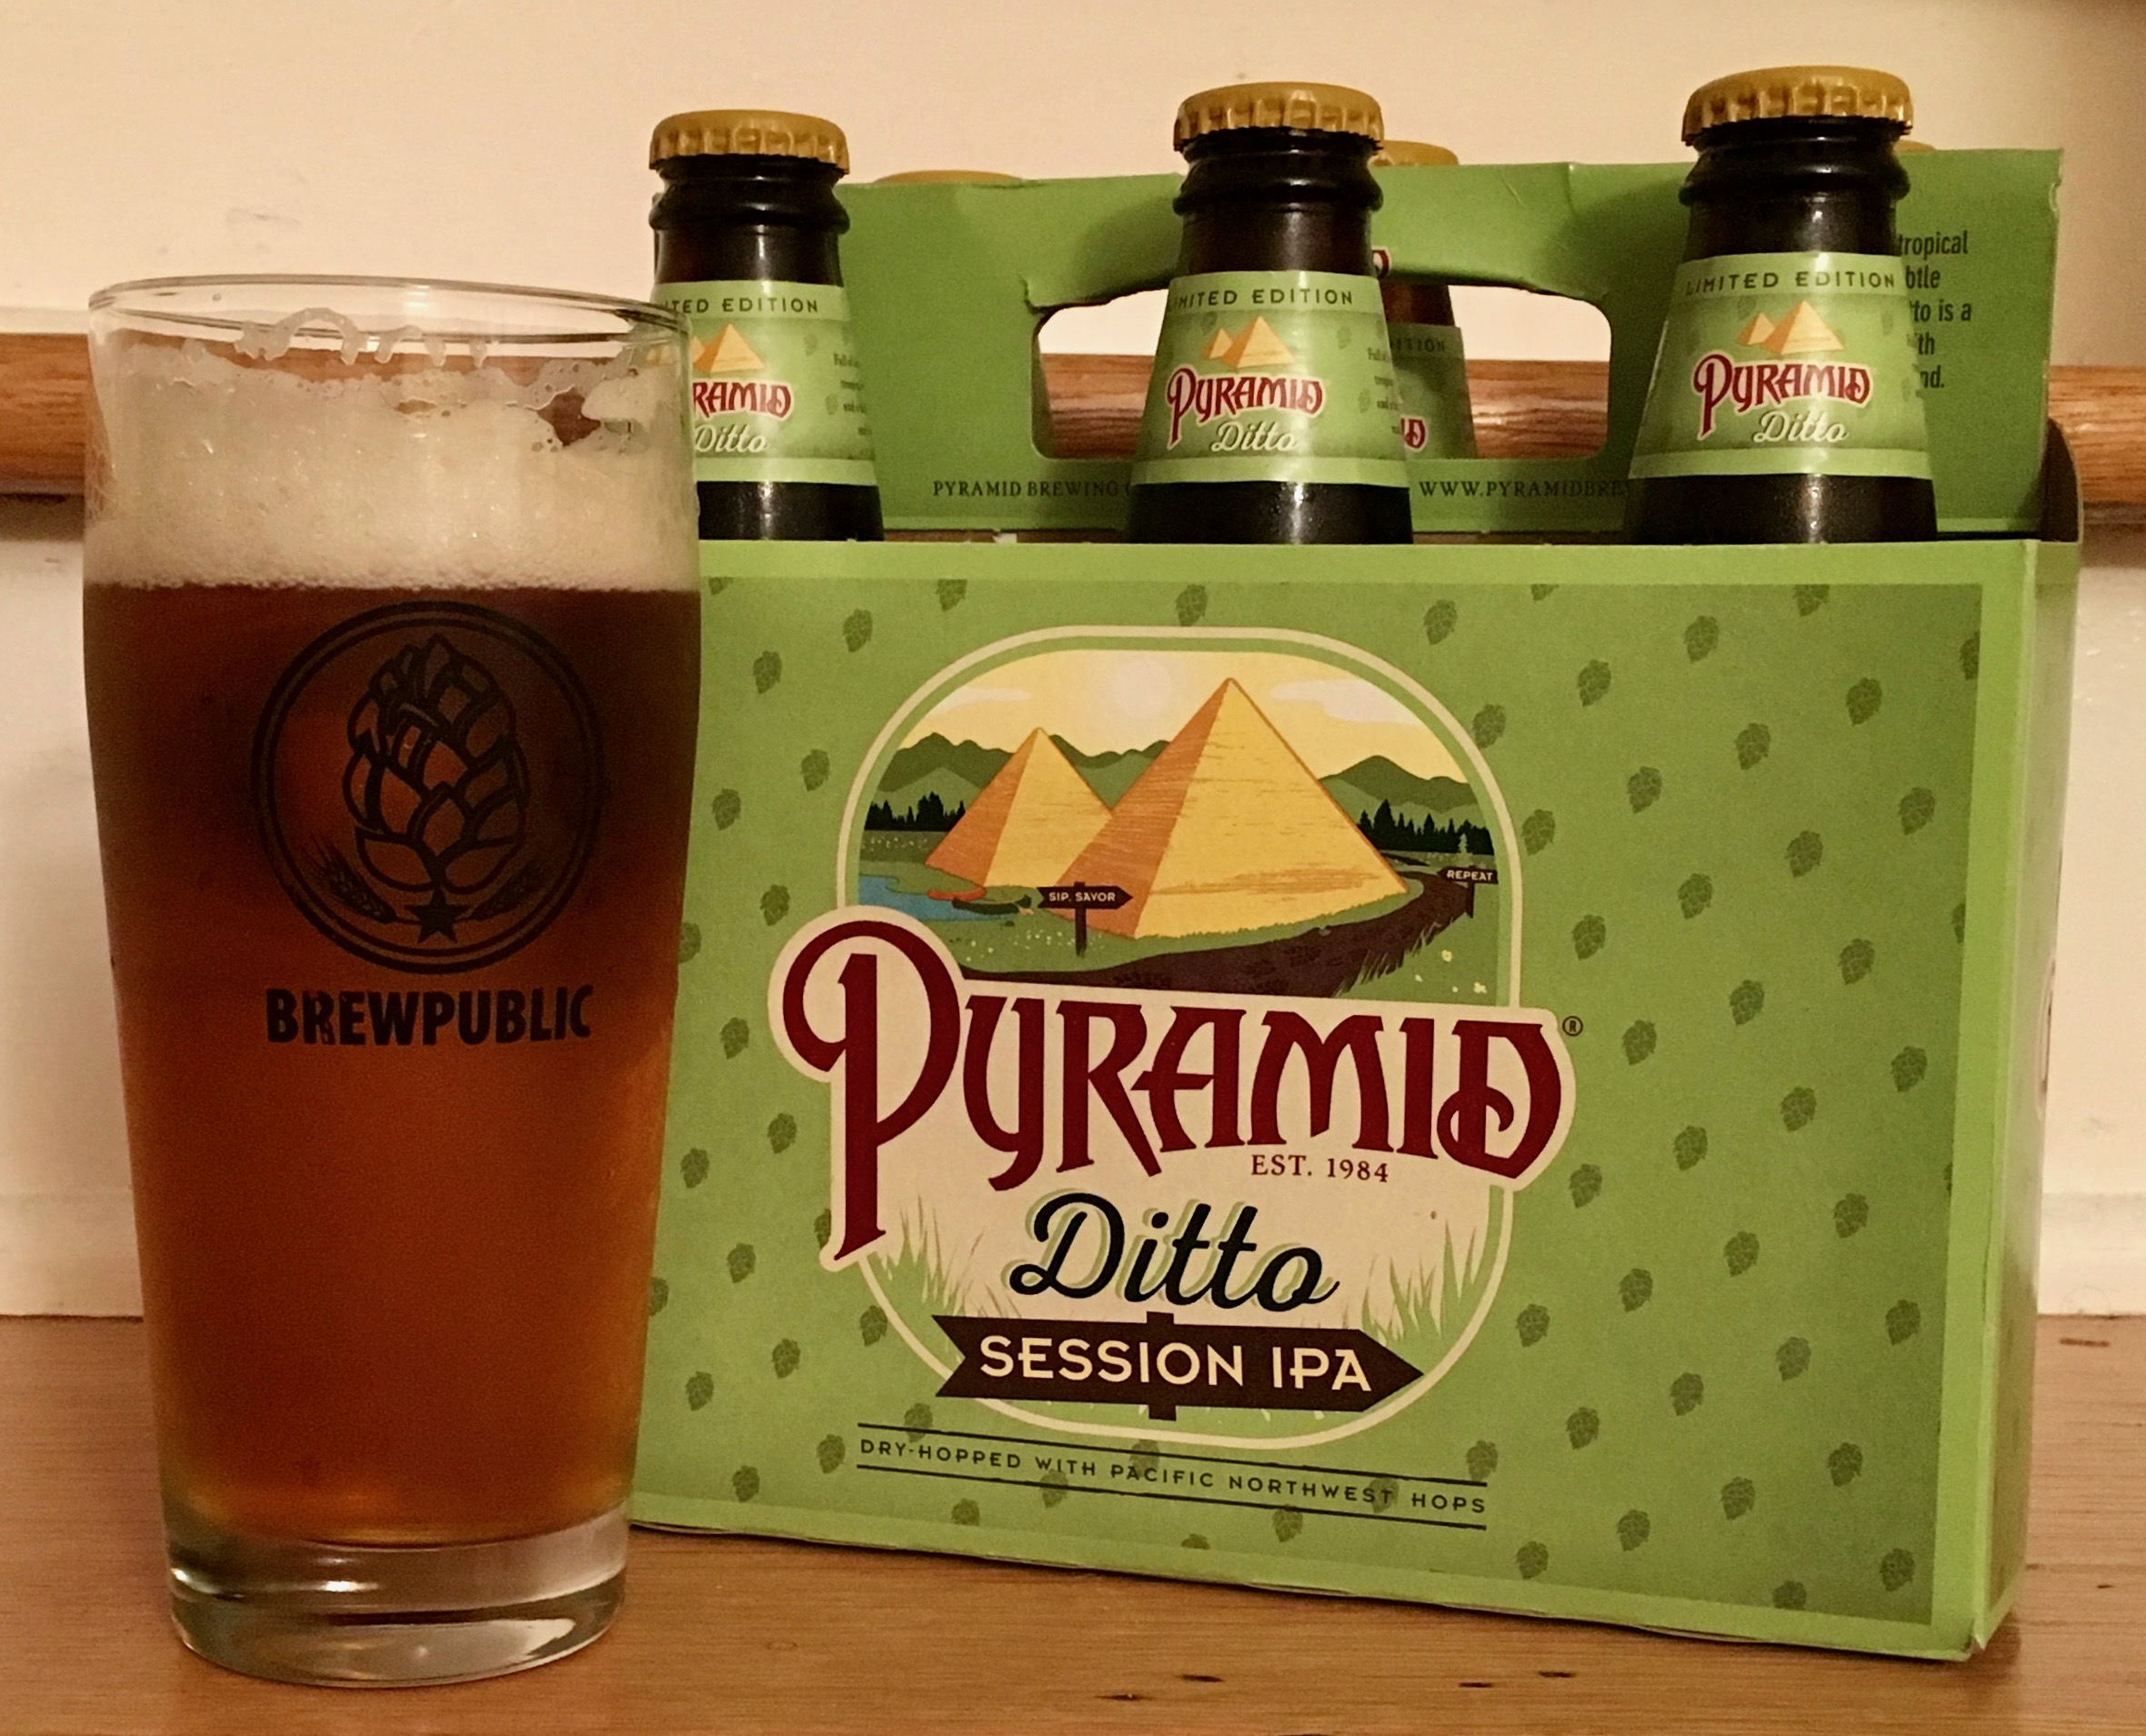 A glass pour of Pyramid Brewing Ditto Session IPA in a Brewpublic glass.